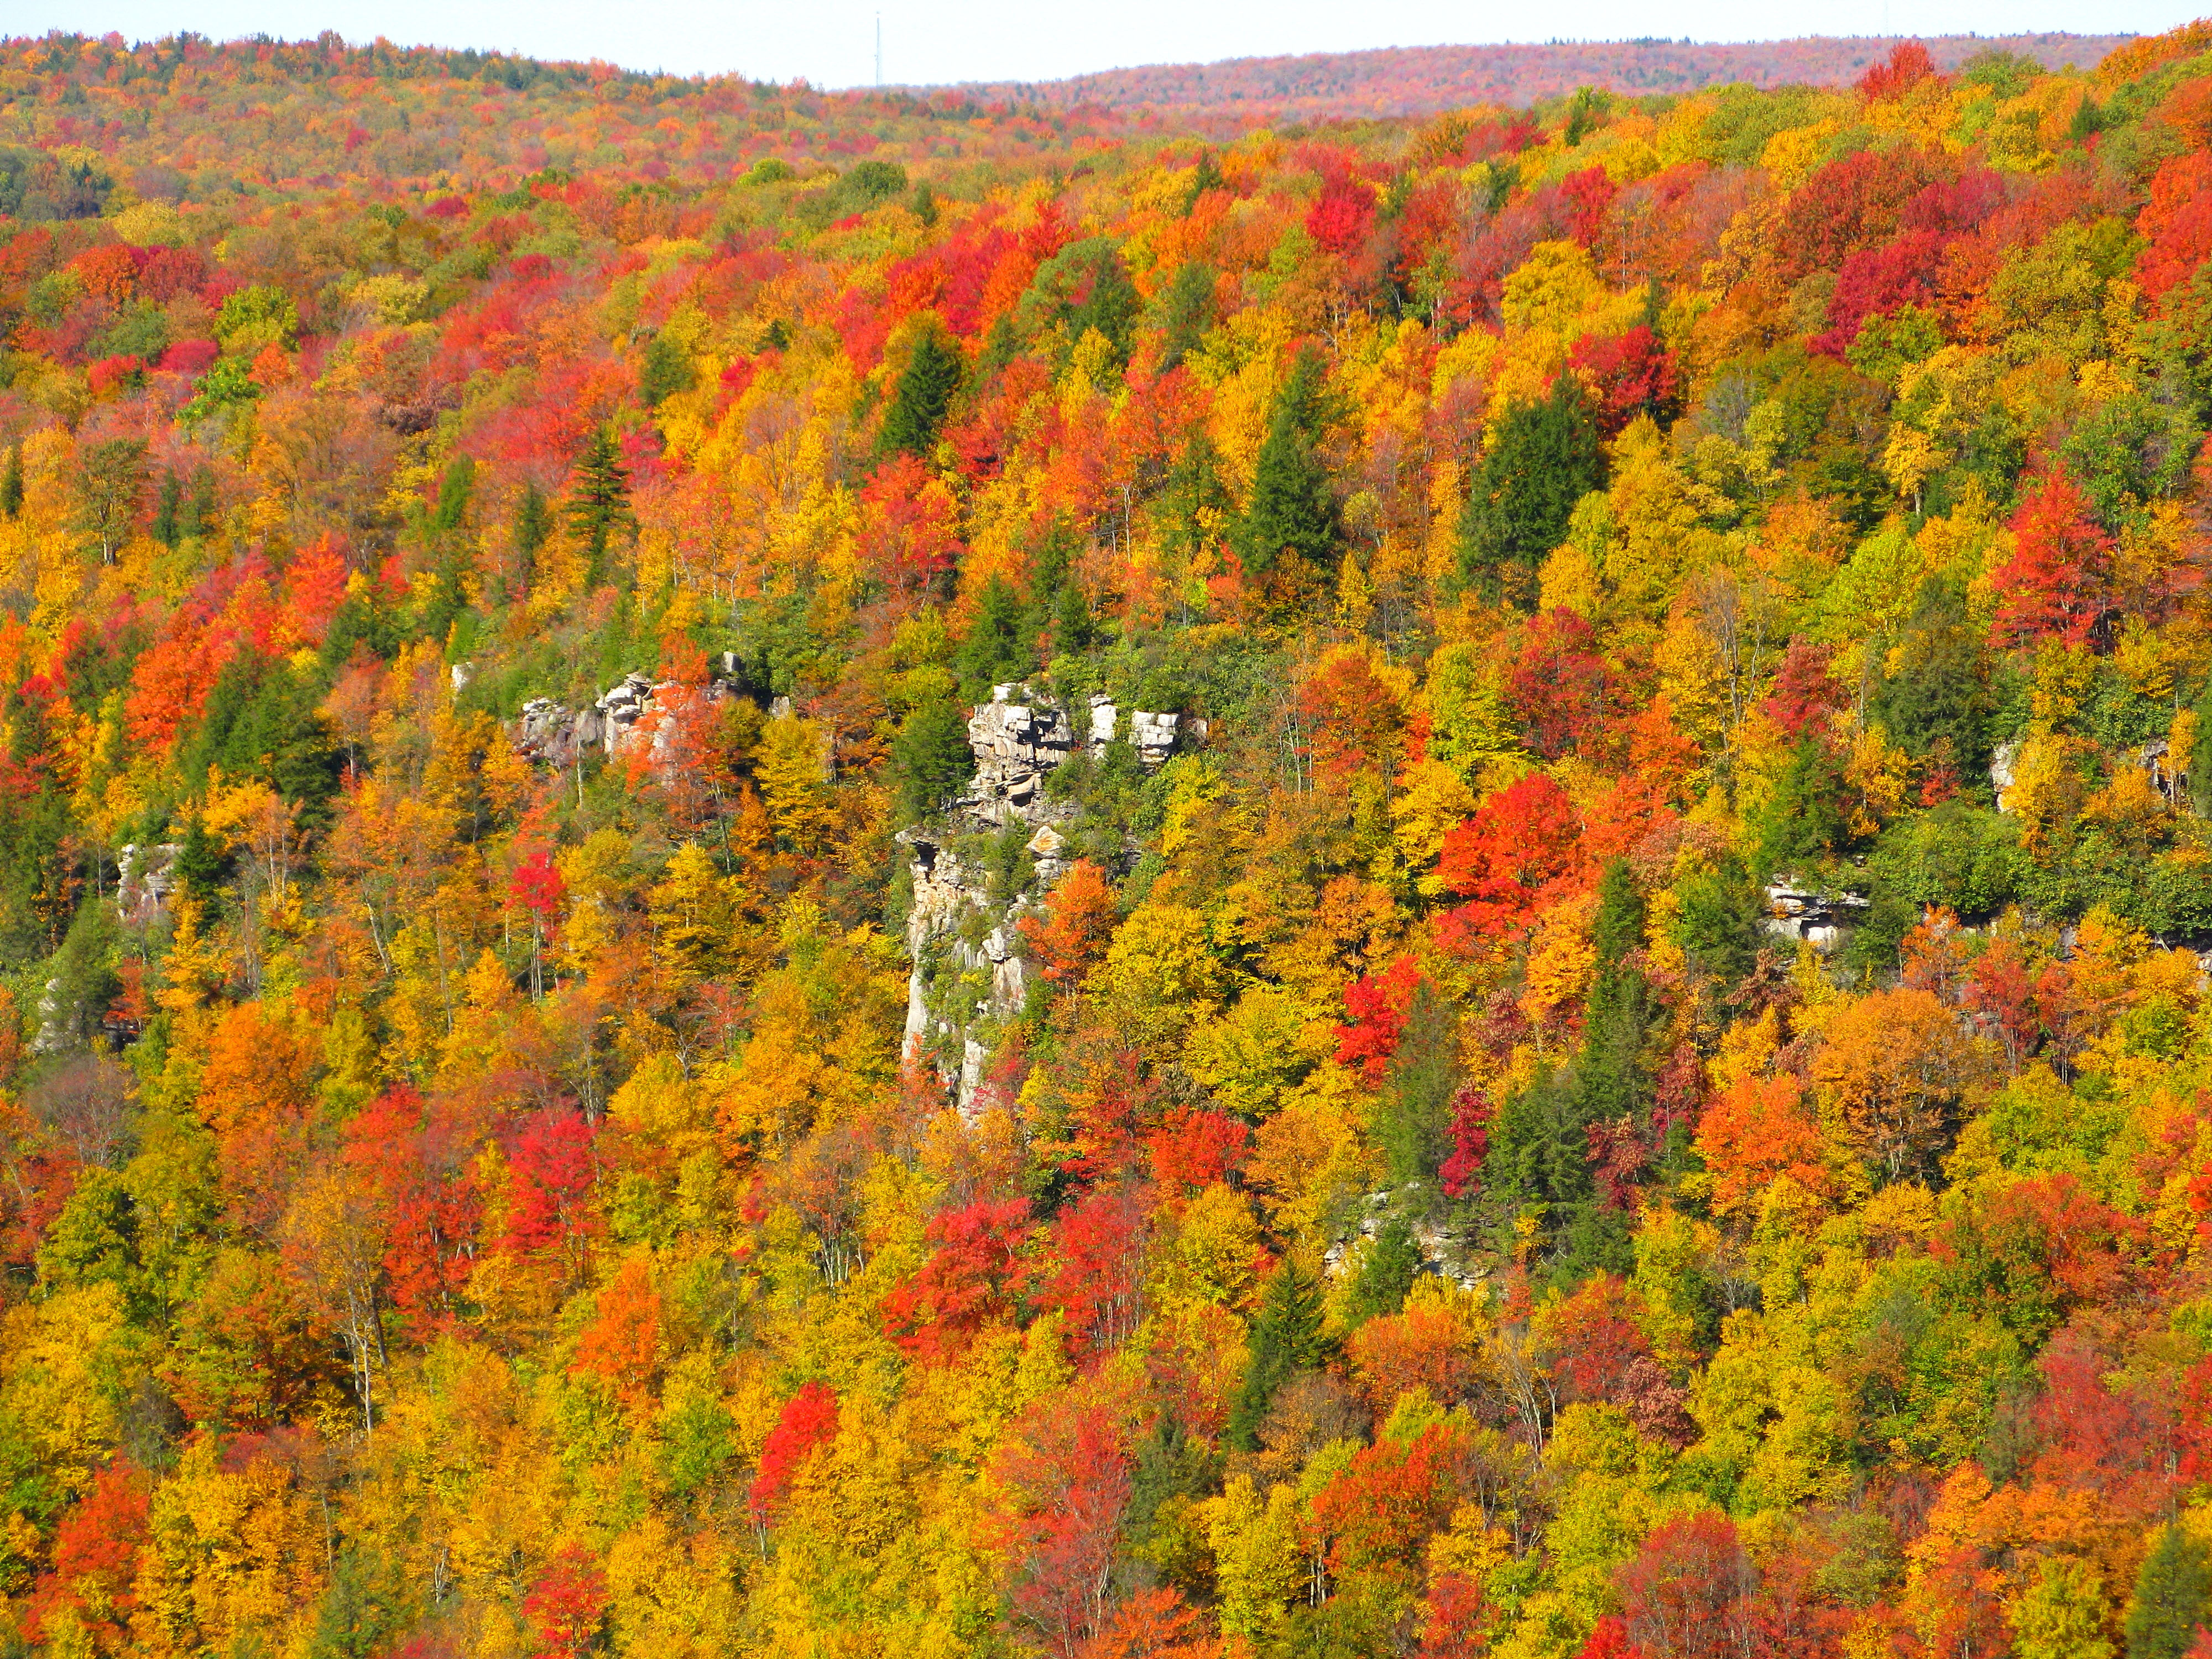 Fall colors in Blackwater Canyon, West Virginia. Photo taken on October 10, 2008.